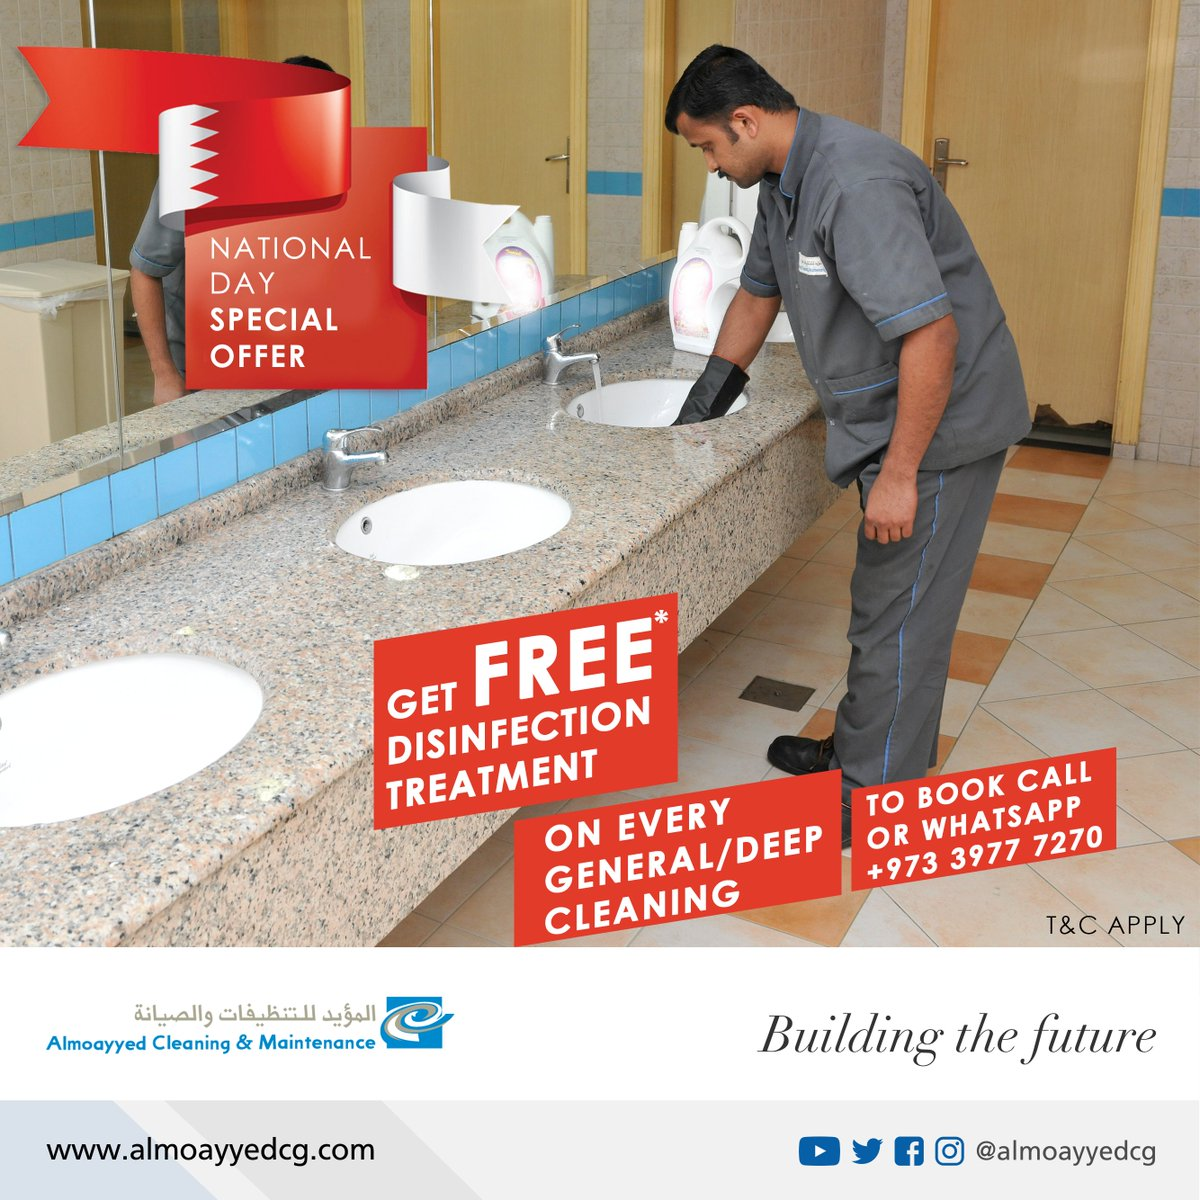 Celebrate Bahrain National Day with a special offer on our cleaning services!    Offer valid till 22nd December 2020.   Call or WhatApp +973 3977 7270 to get a quote and book your service.      #almoayyedcg #almoayyedcleaning #almoayyedcleaningmaintenance #cleaning https://t.co/1Zxo28VzZ0